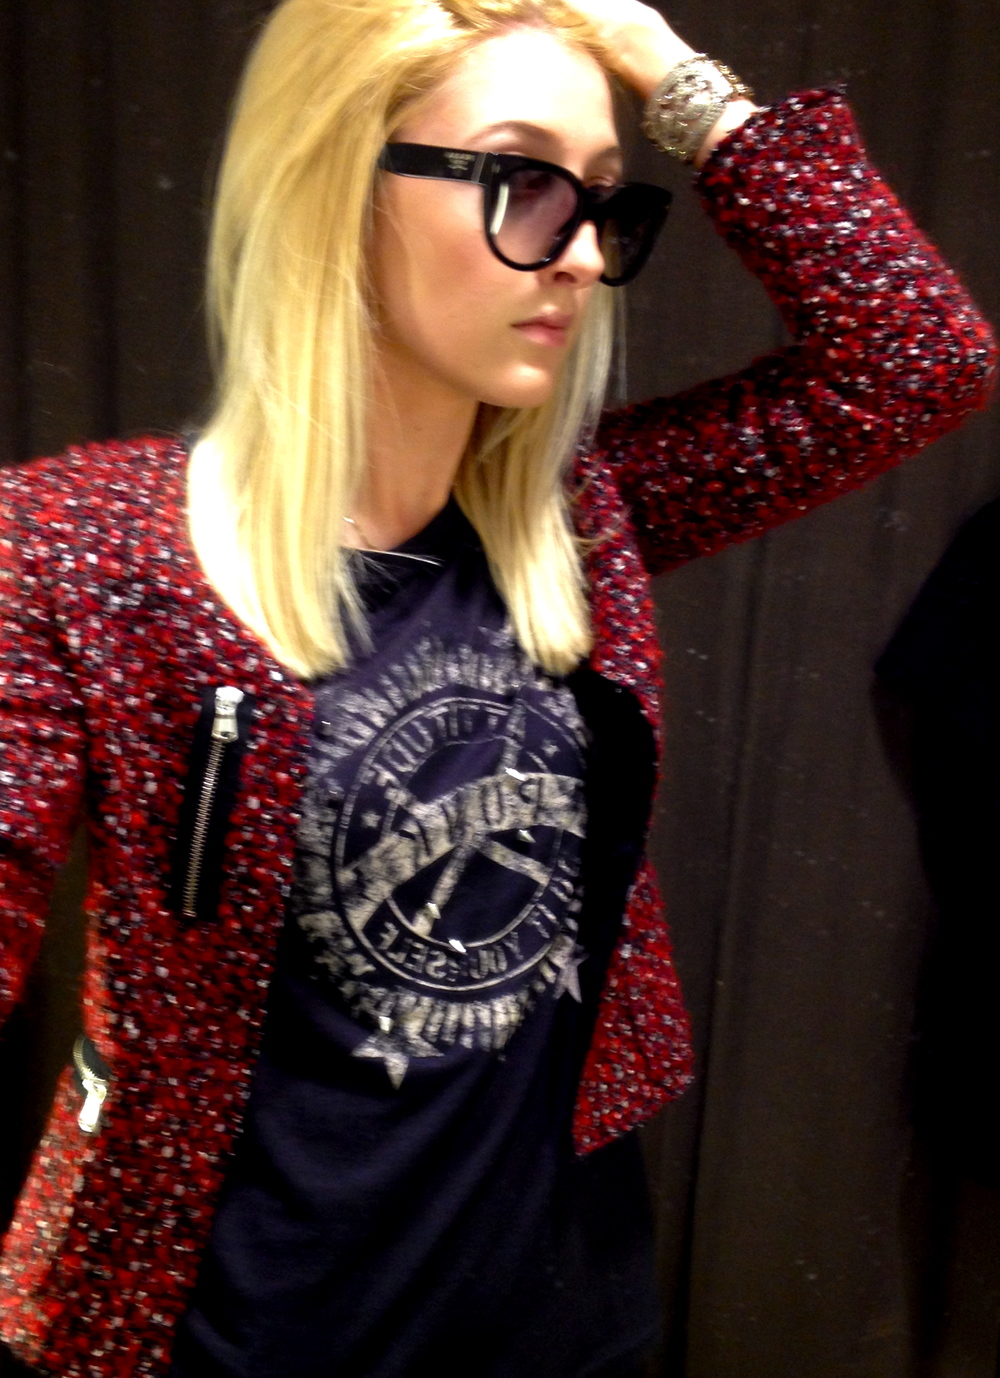 Jacket and t-shirt:  ZARA  // Sunglasses:  Prada  // Bracelet:  vintage